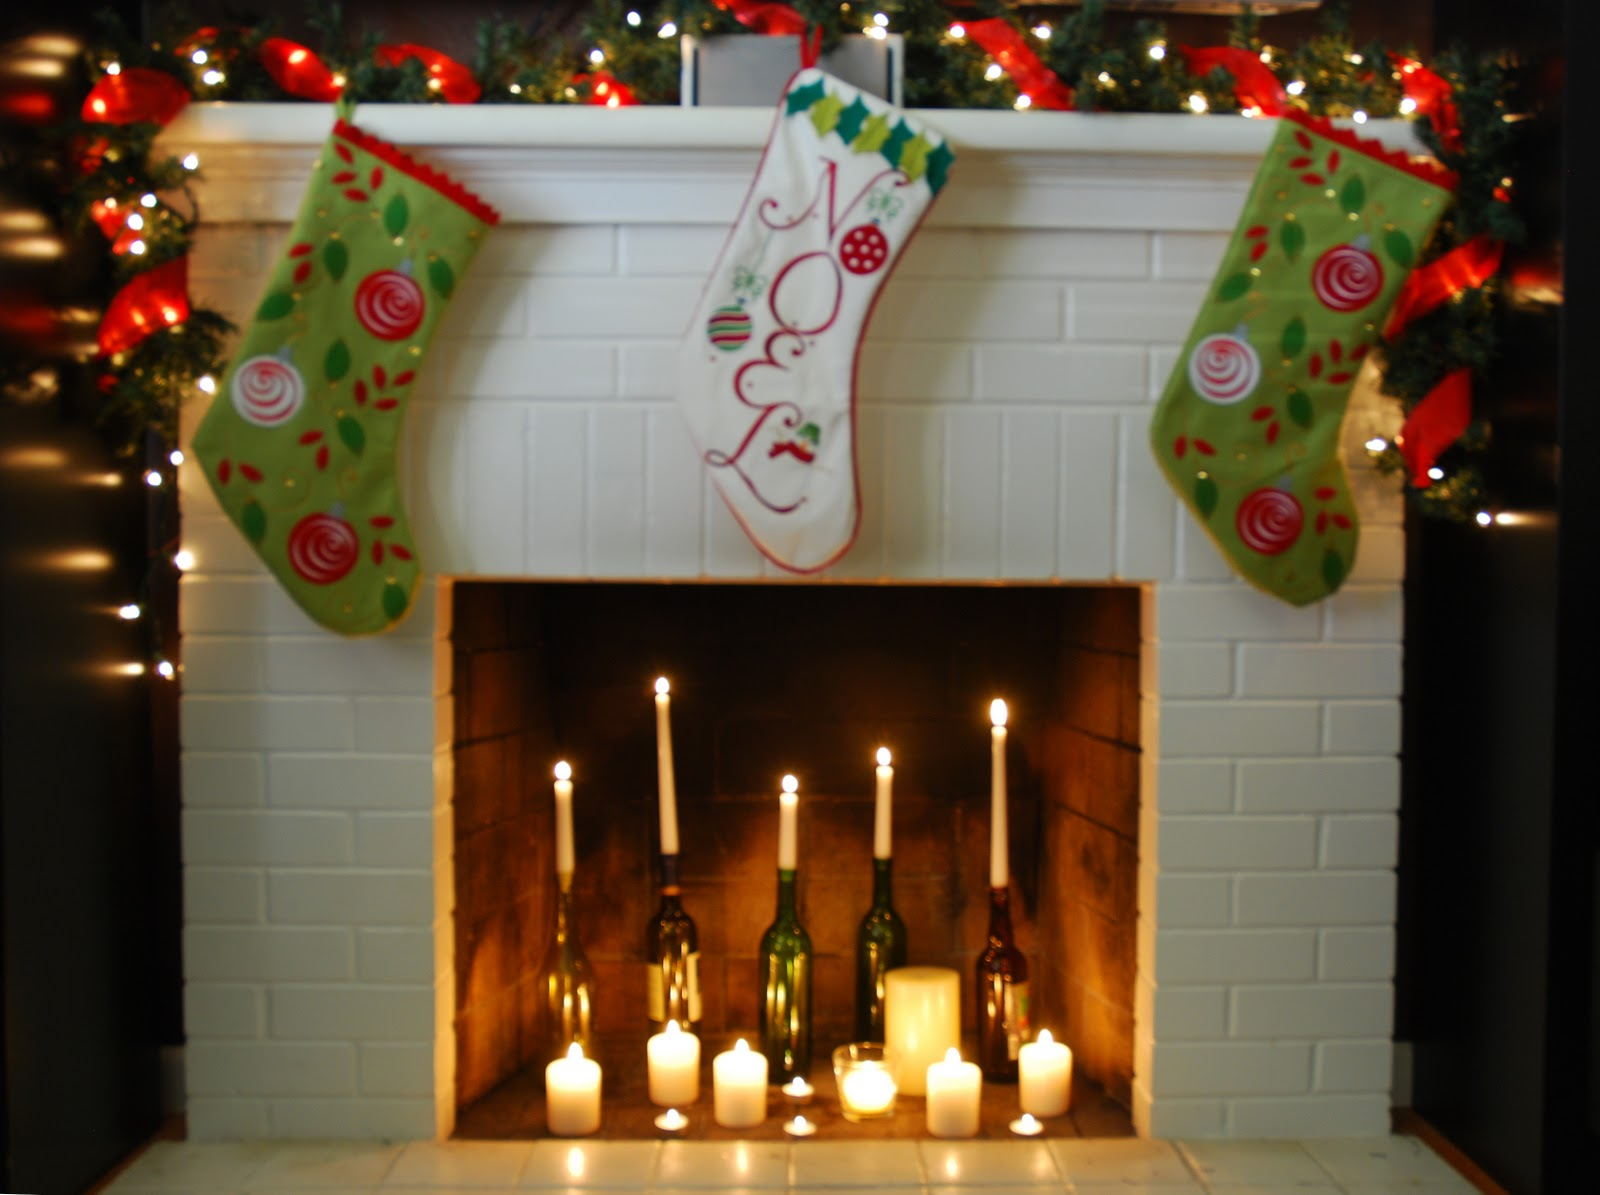 decorated-stocking-ideas